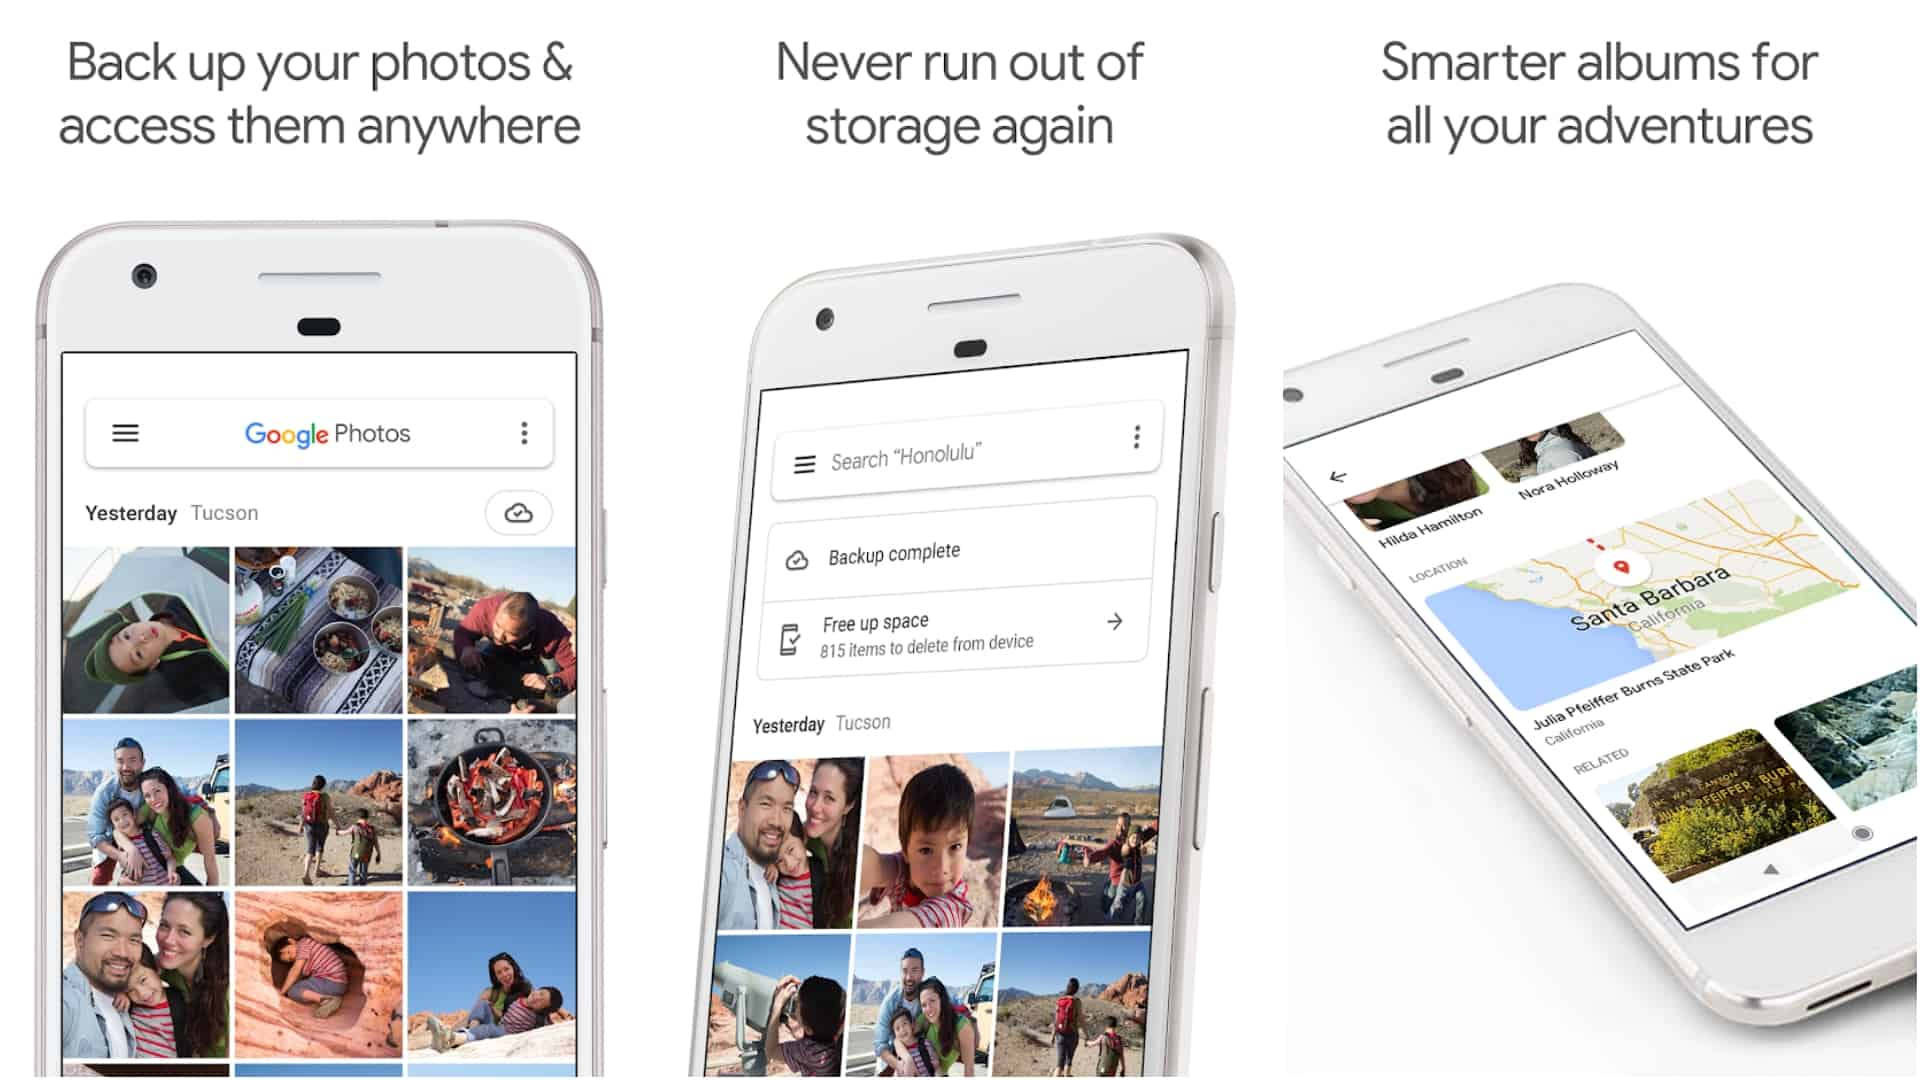 Google Photos app image May 2020